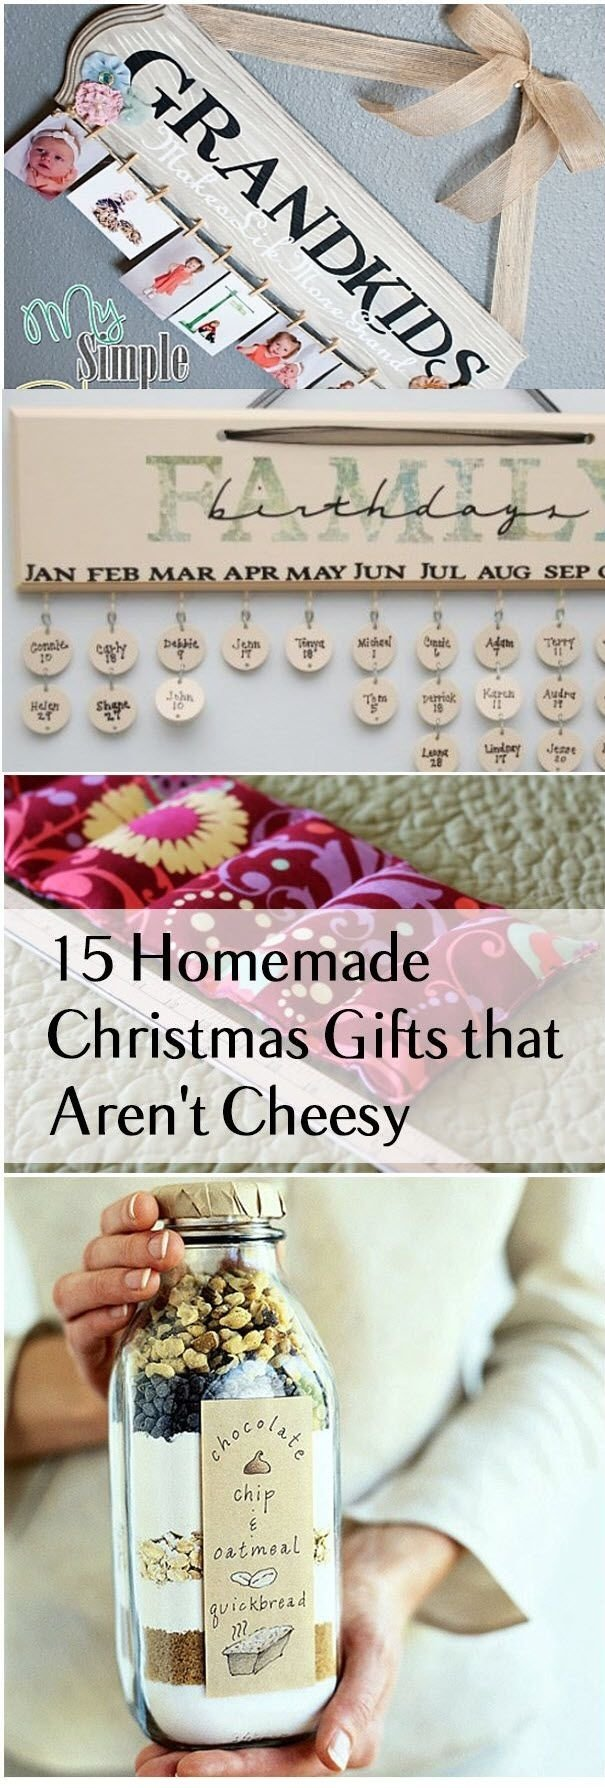 10 Cute Christmas Gift Ideas For Family Members 1102 best gifts images on pinterest gift ideas christmas presents 1